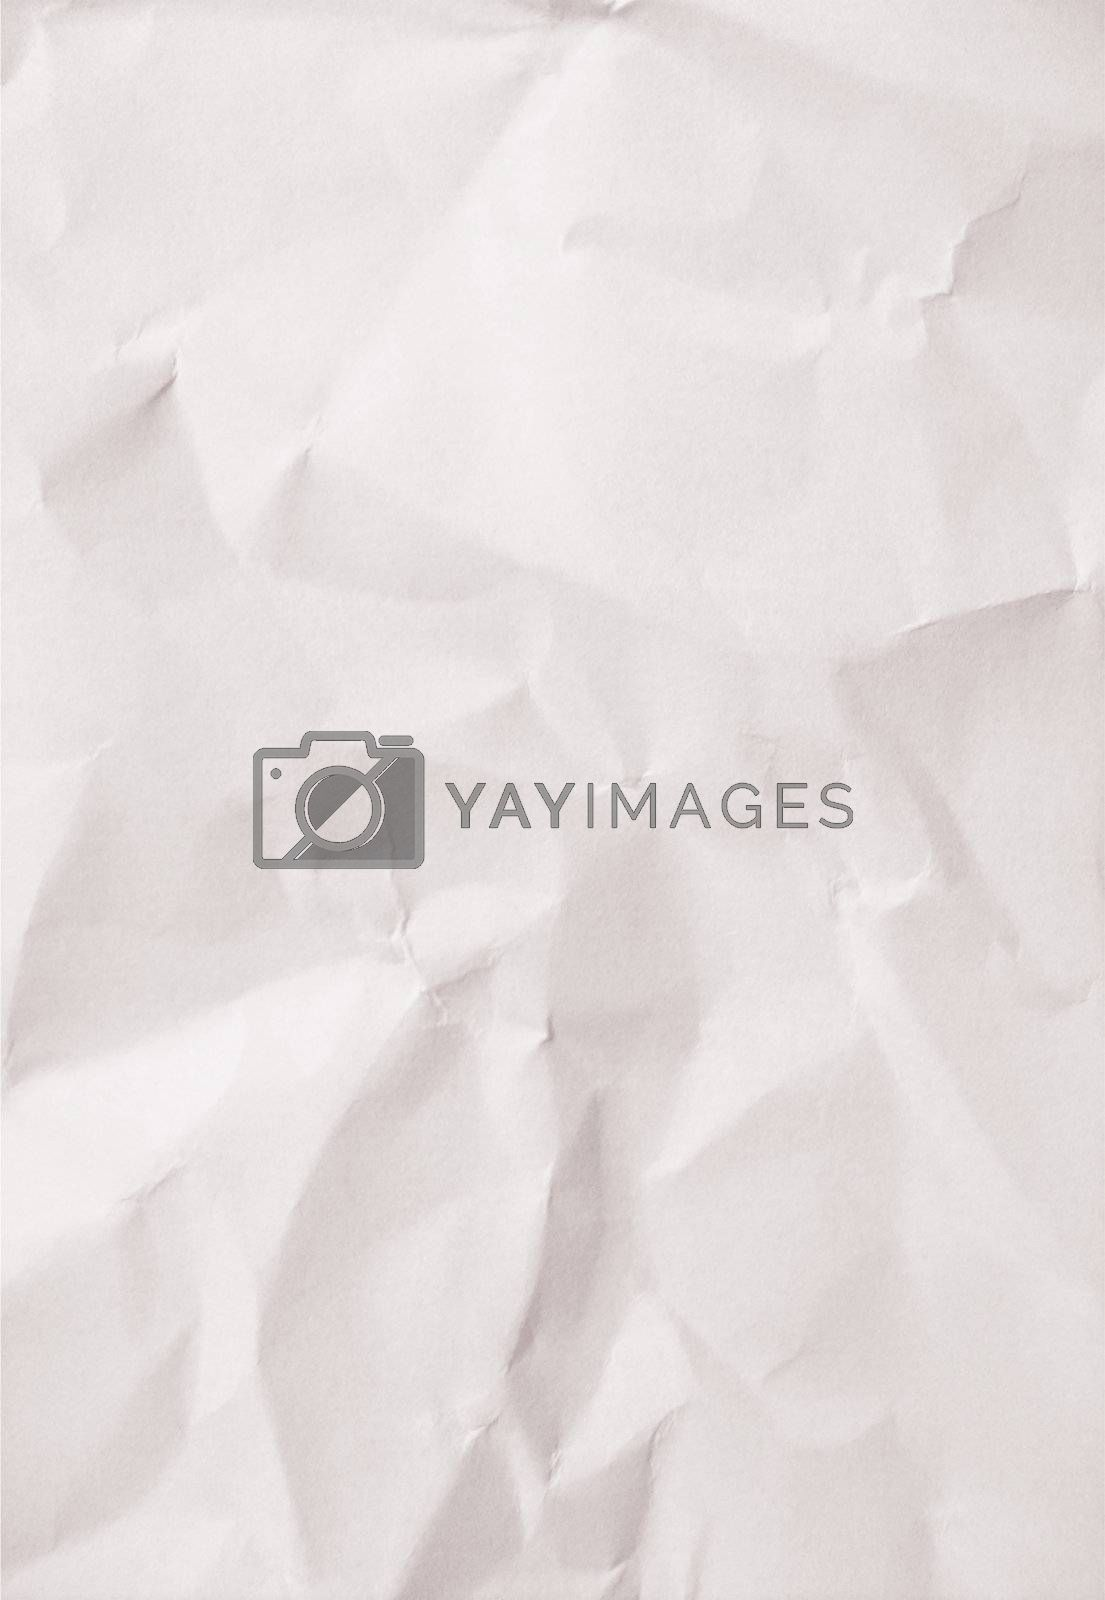 White blank crumpled paper for background